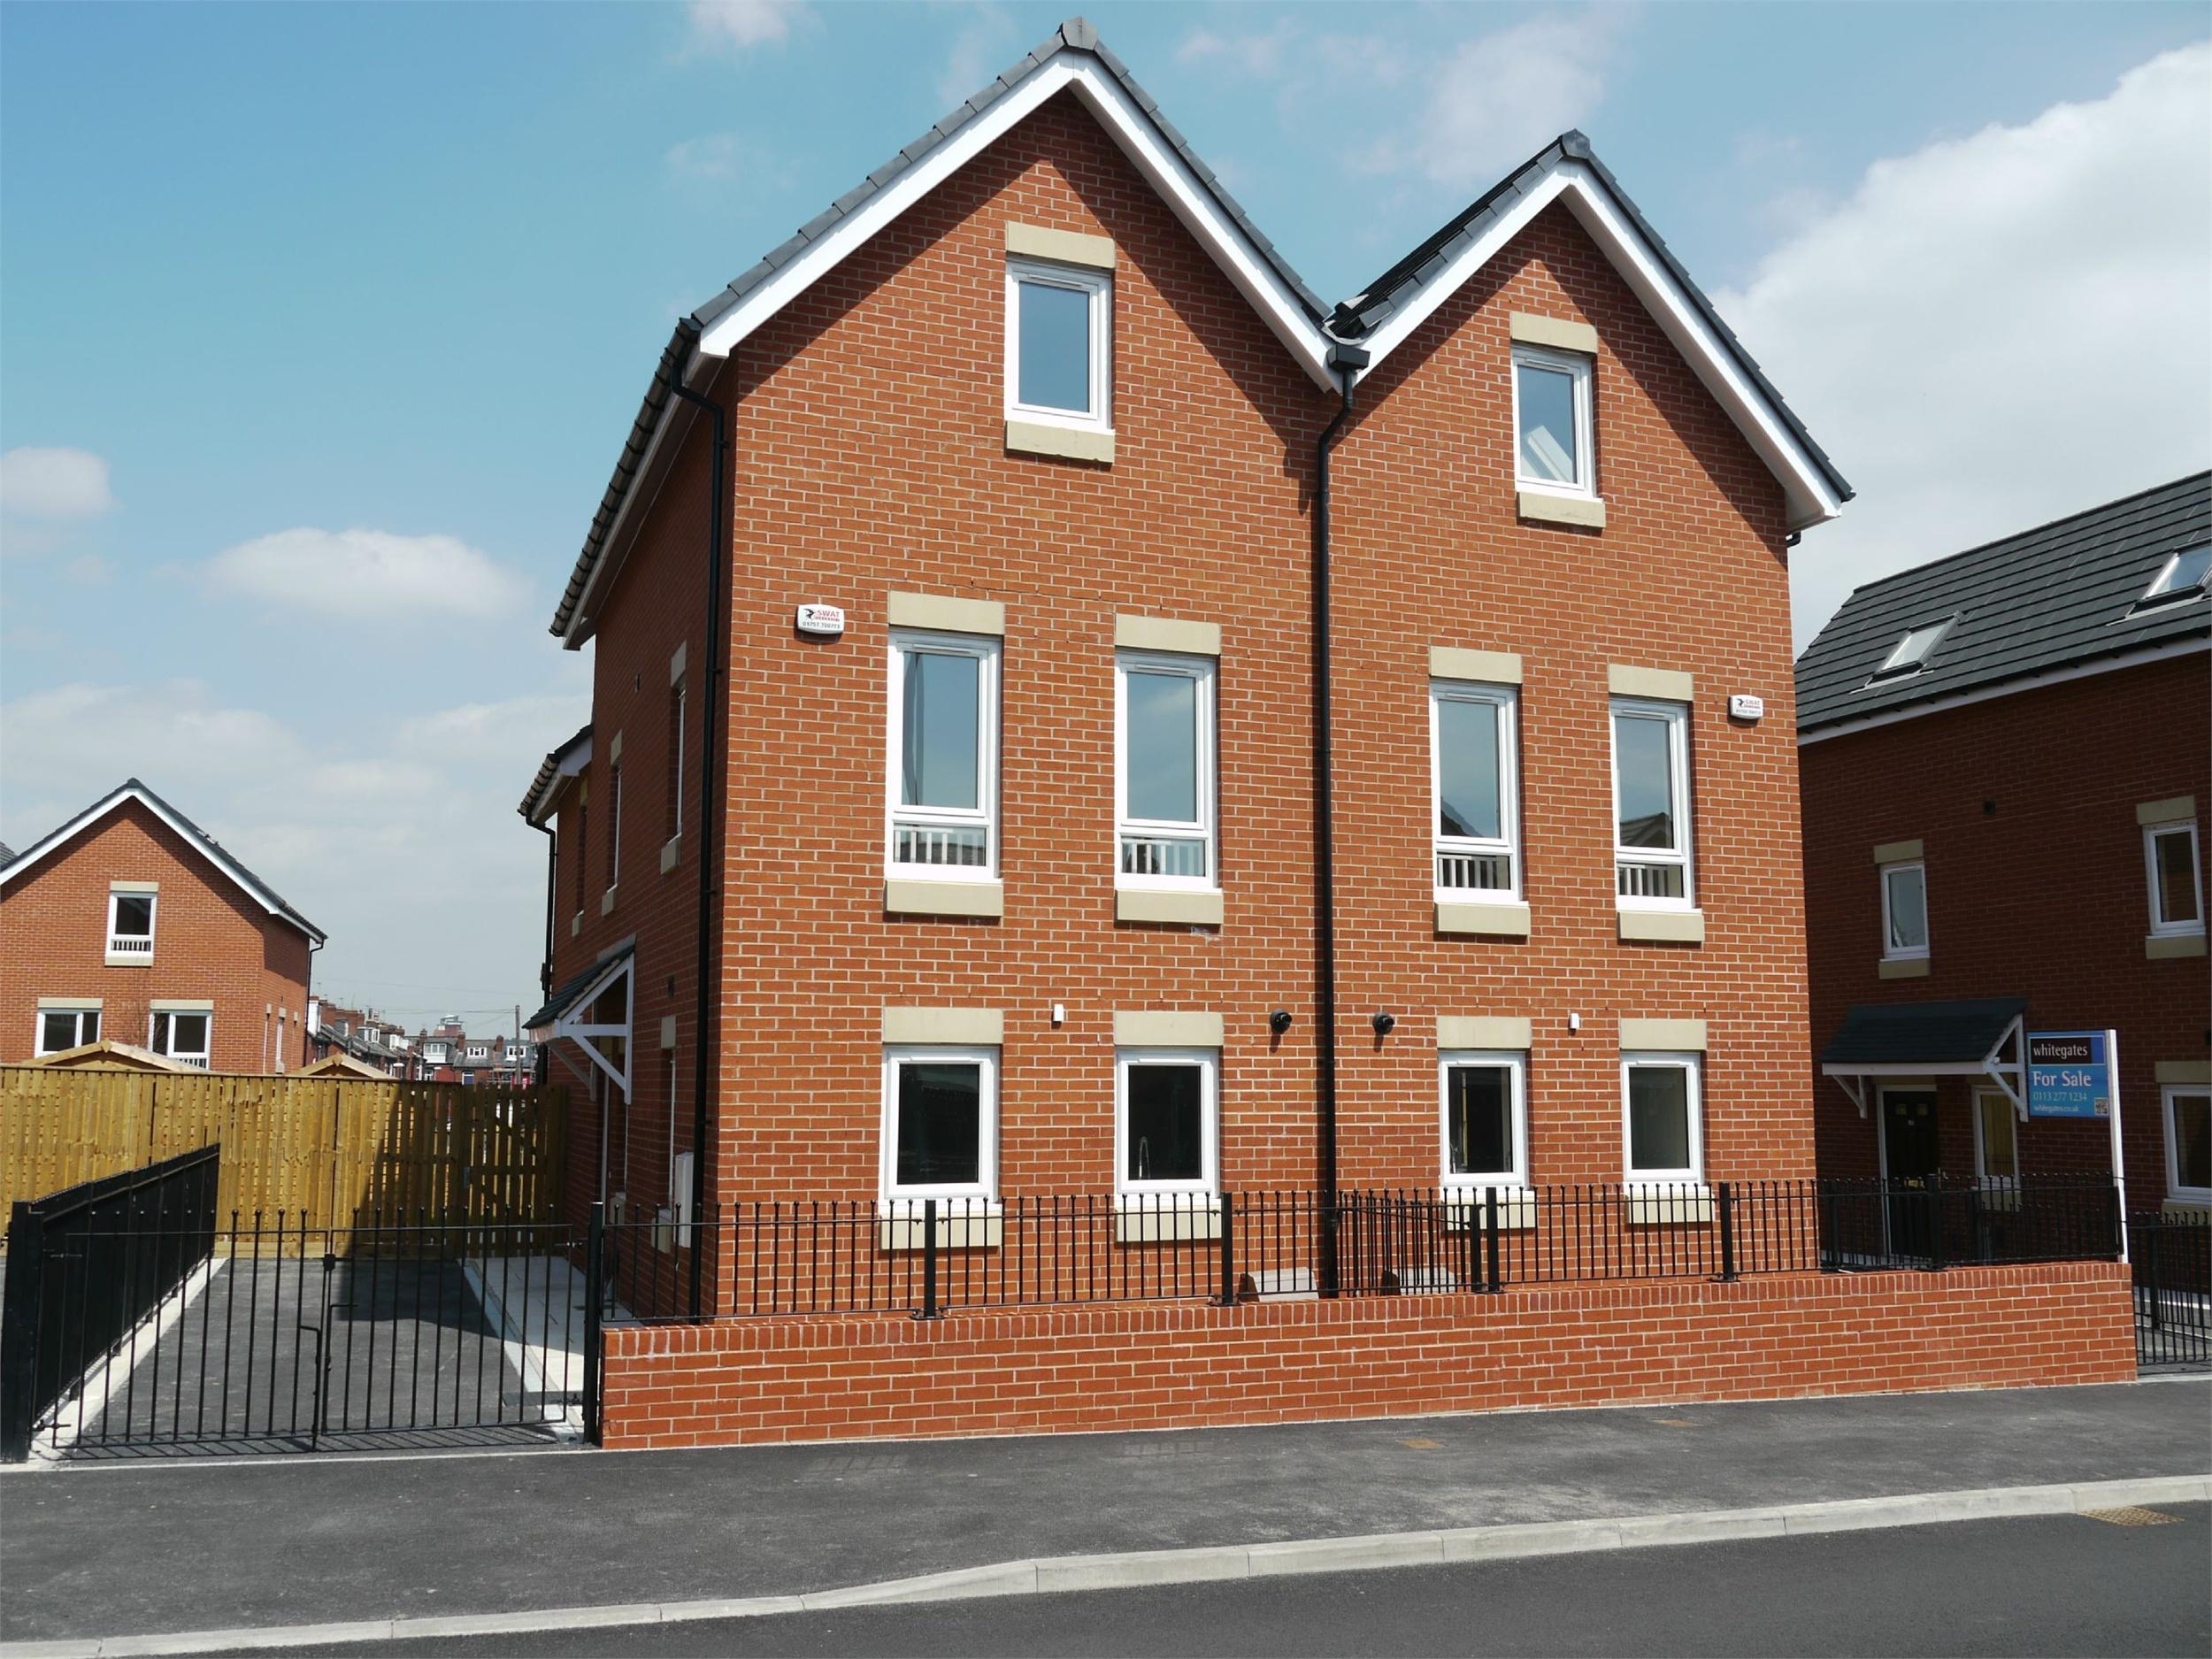 Whitegates South Leeds 3 Bedroom Semi Detached House For